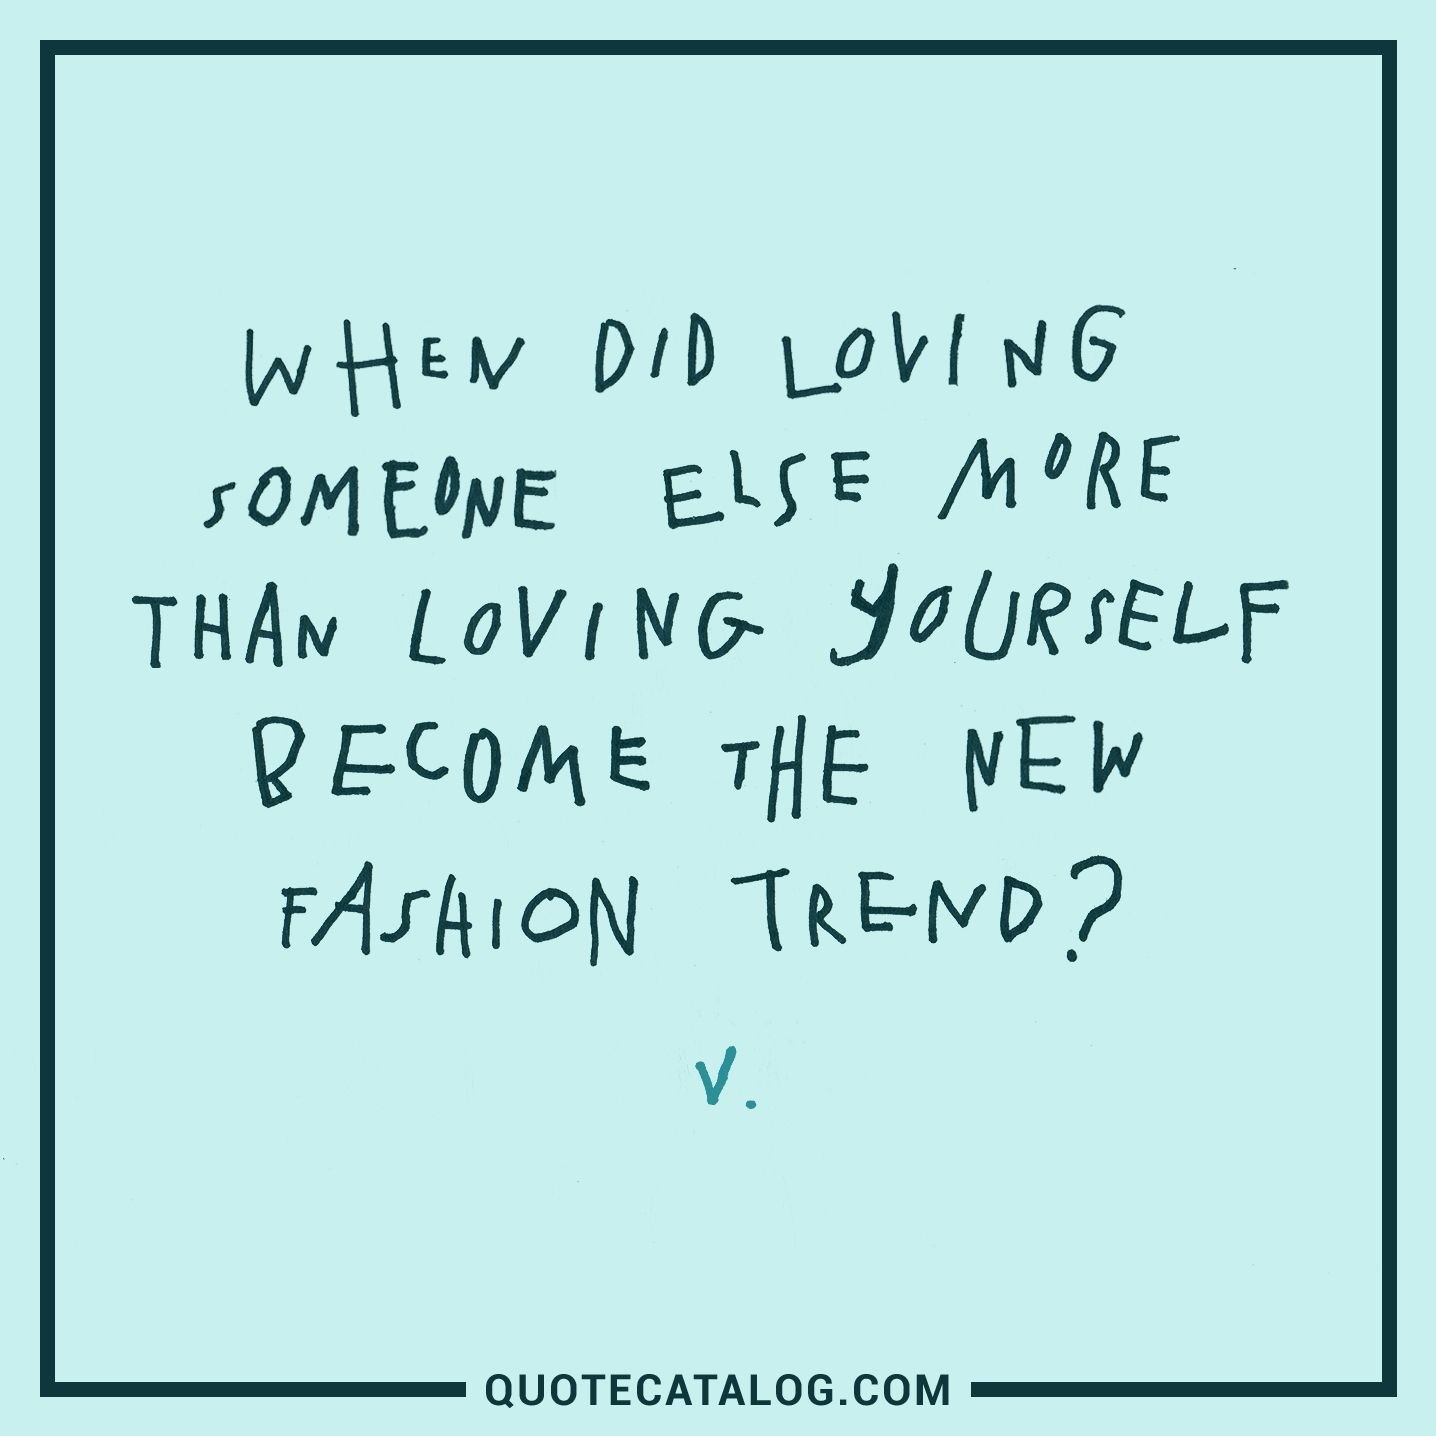 Quotes About Loving Someone Quotes  V Quote  When Did Loving Someone Else More Than L